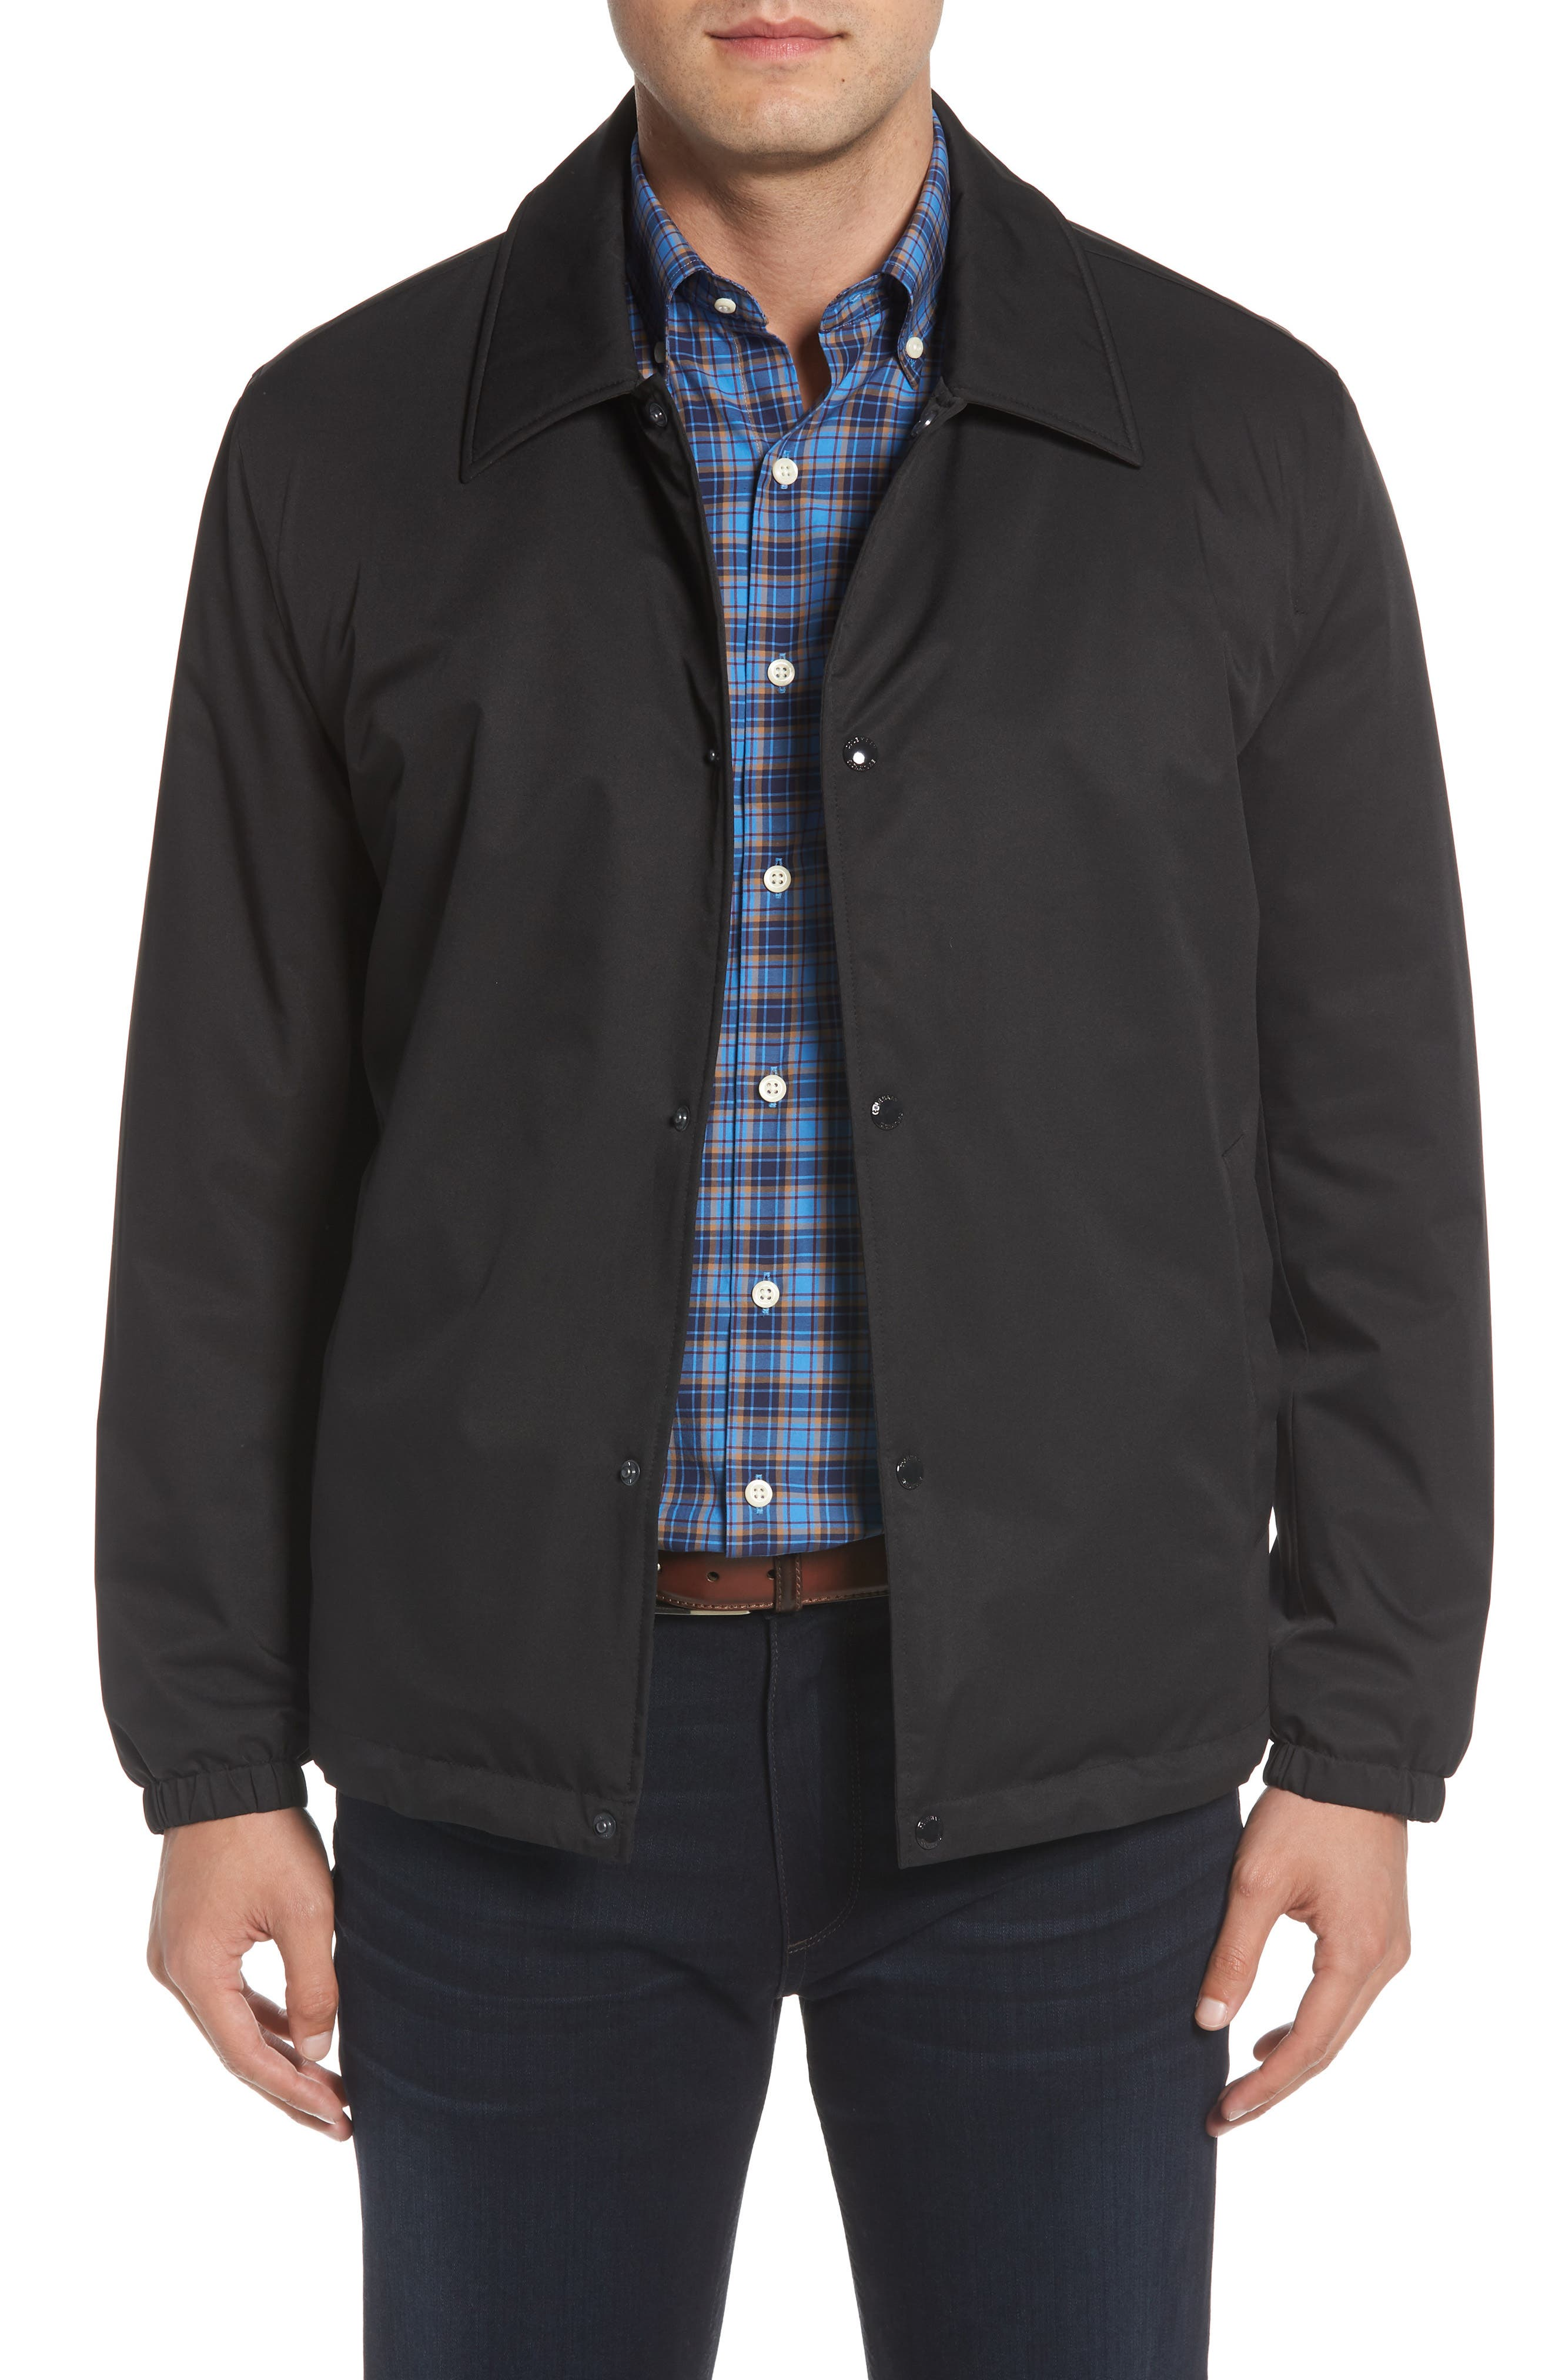 COLE HAAN SIGNATURE Faux Shearling Lined Jacket, Main, color, 001